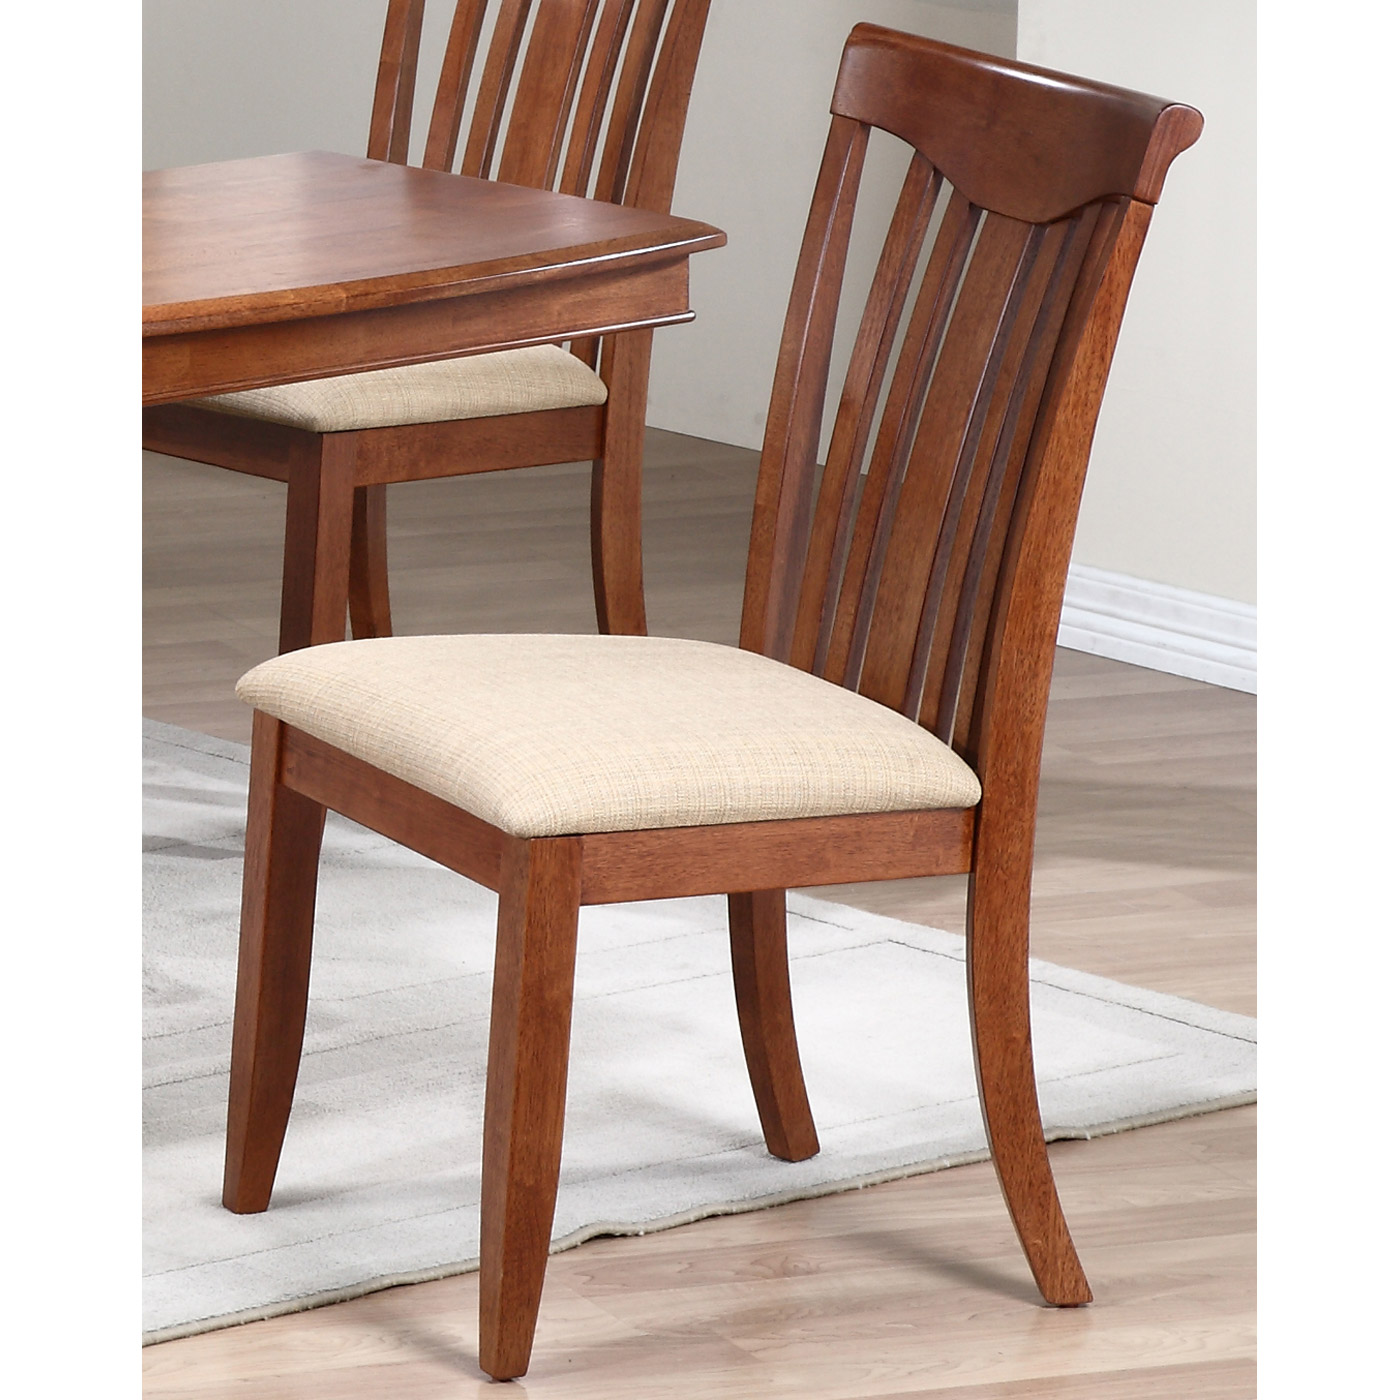 Karenina Side Chair - Slat Back, Beige Fabric Seat - ICON-CH51-UP